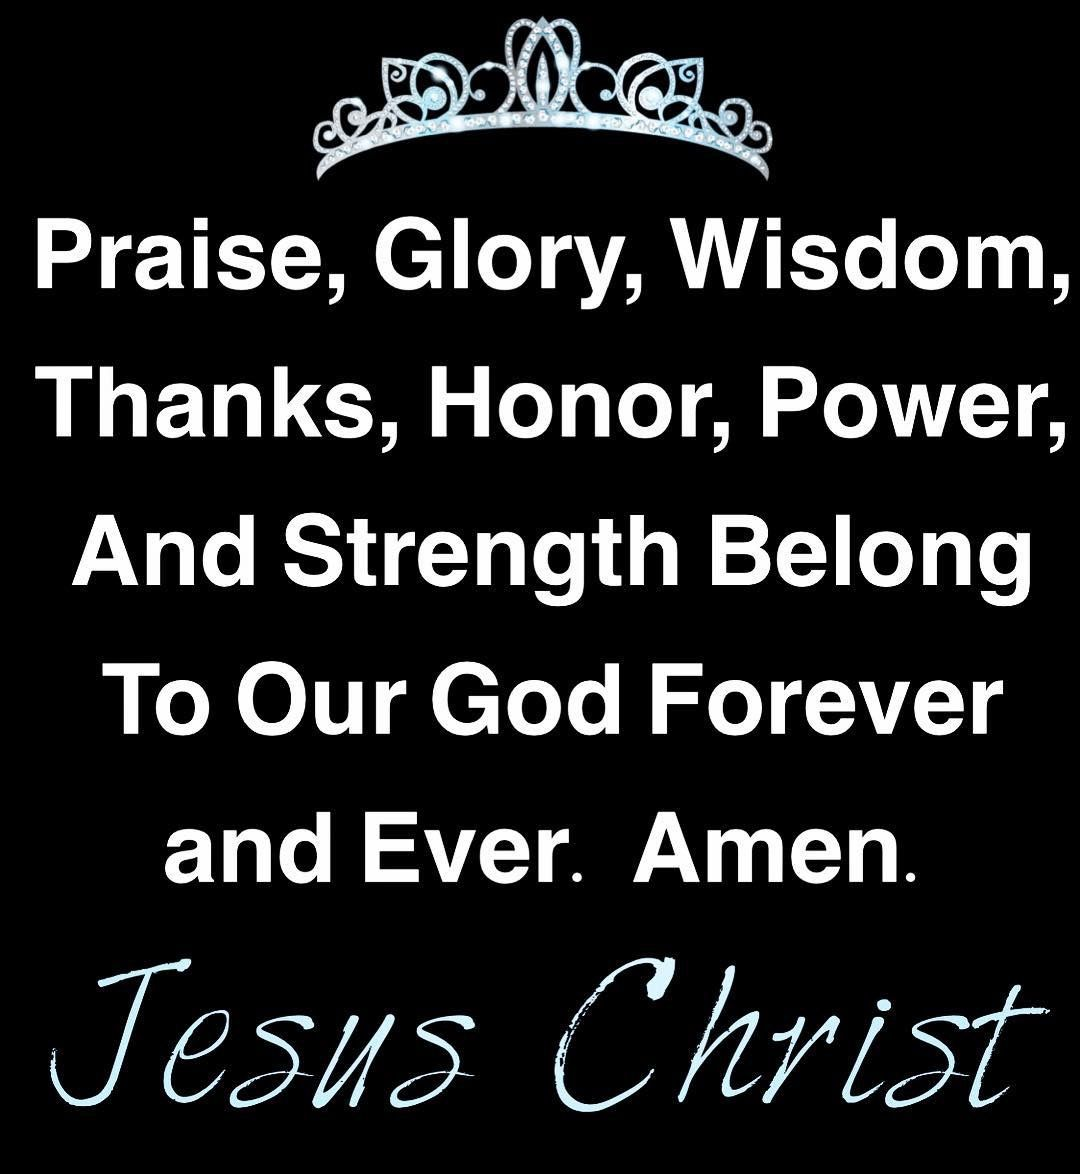 Praise Glory Wisdom Thanks Honor Power And Strength Belong